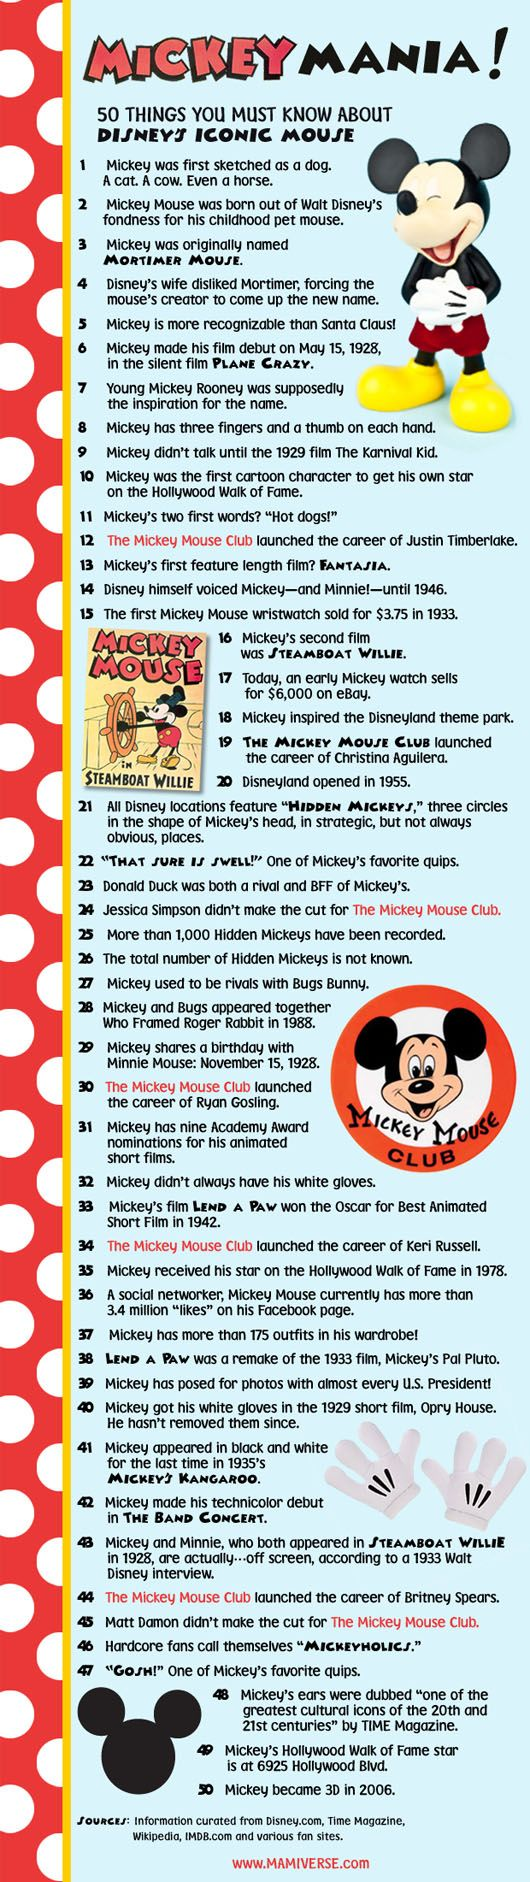 50 Things About Mickey Mouse -- not included is the fact that the voices of Mickey and Minnie were real-life husband and wife!